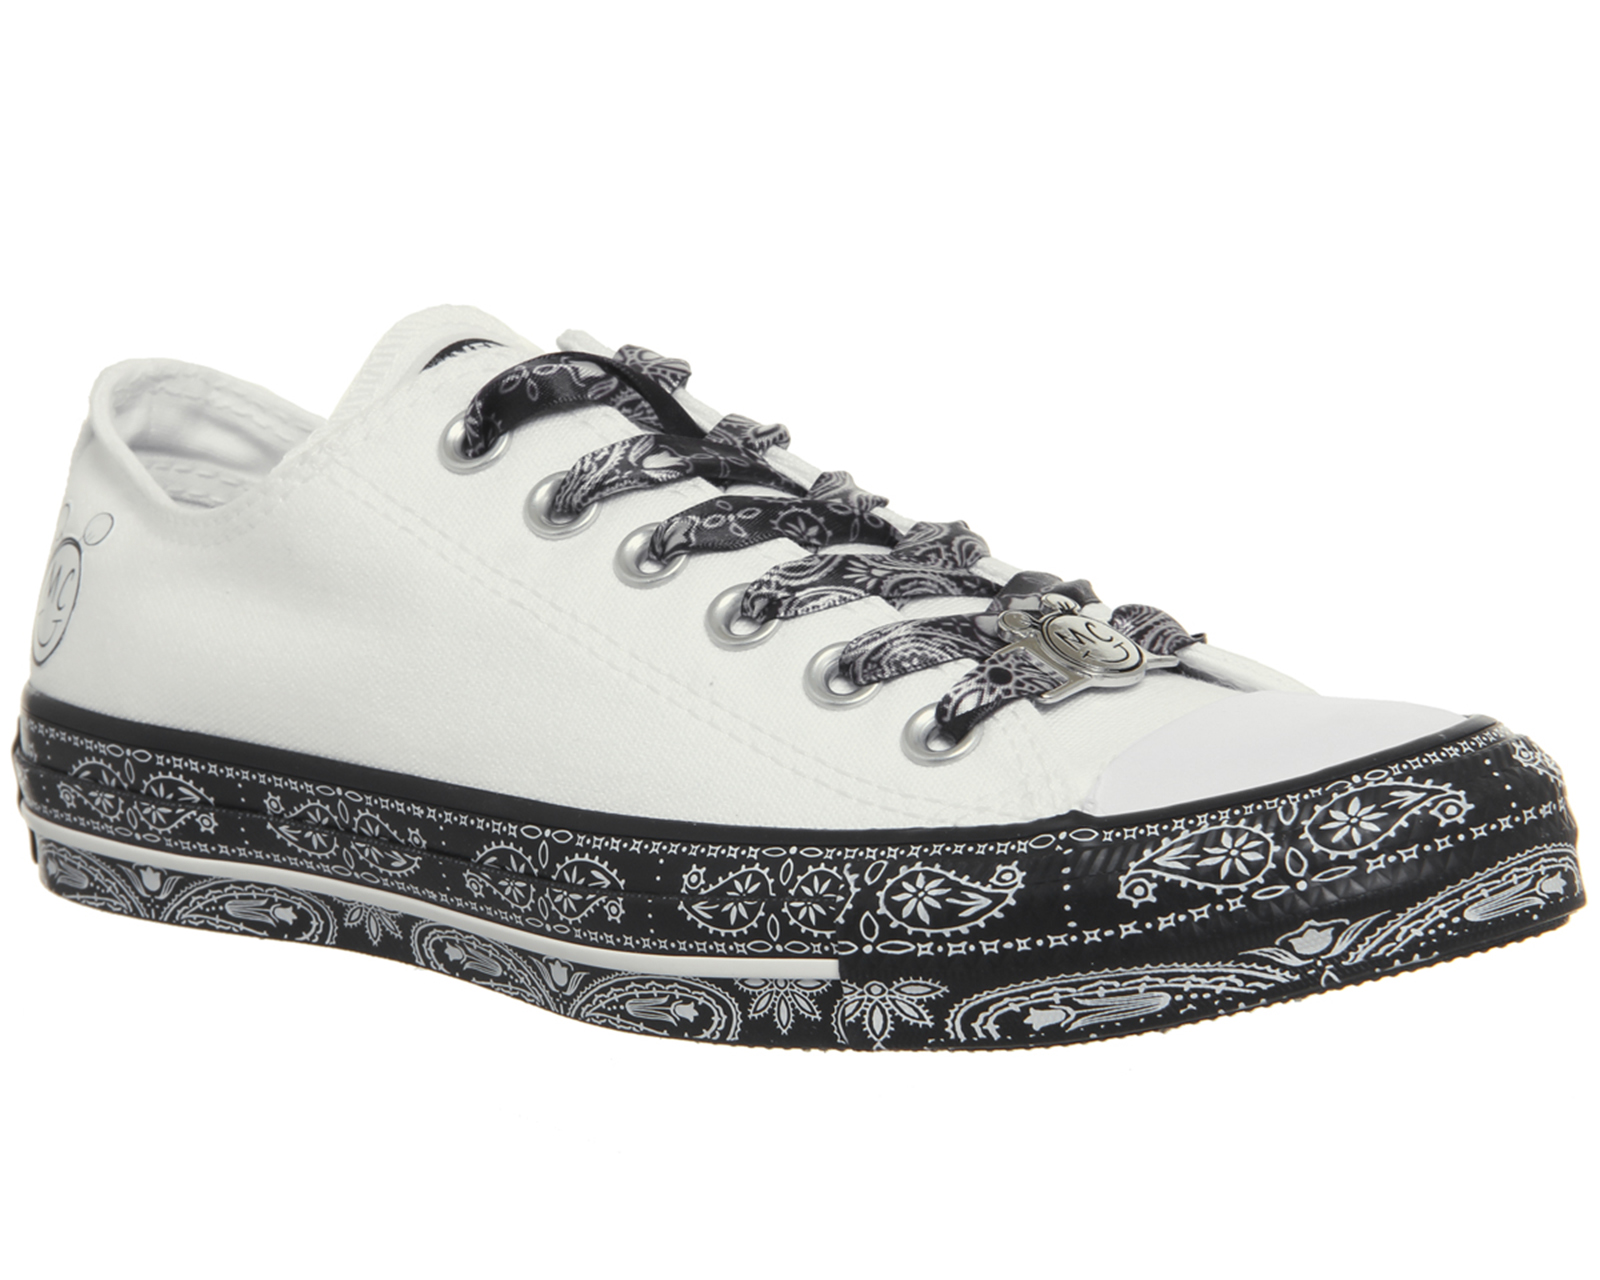 Sentinel Womens Converse Ctas Classic Ox Trainers WHITE BLACK WHITE Trainers  Shoes 08c7e950d7